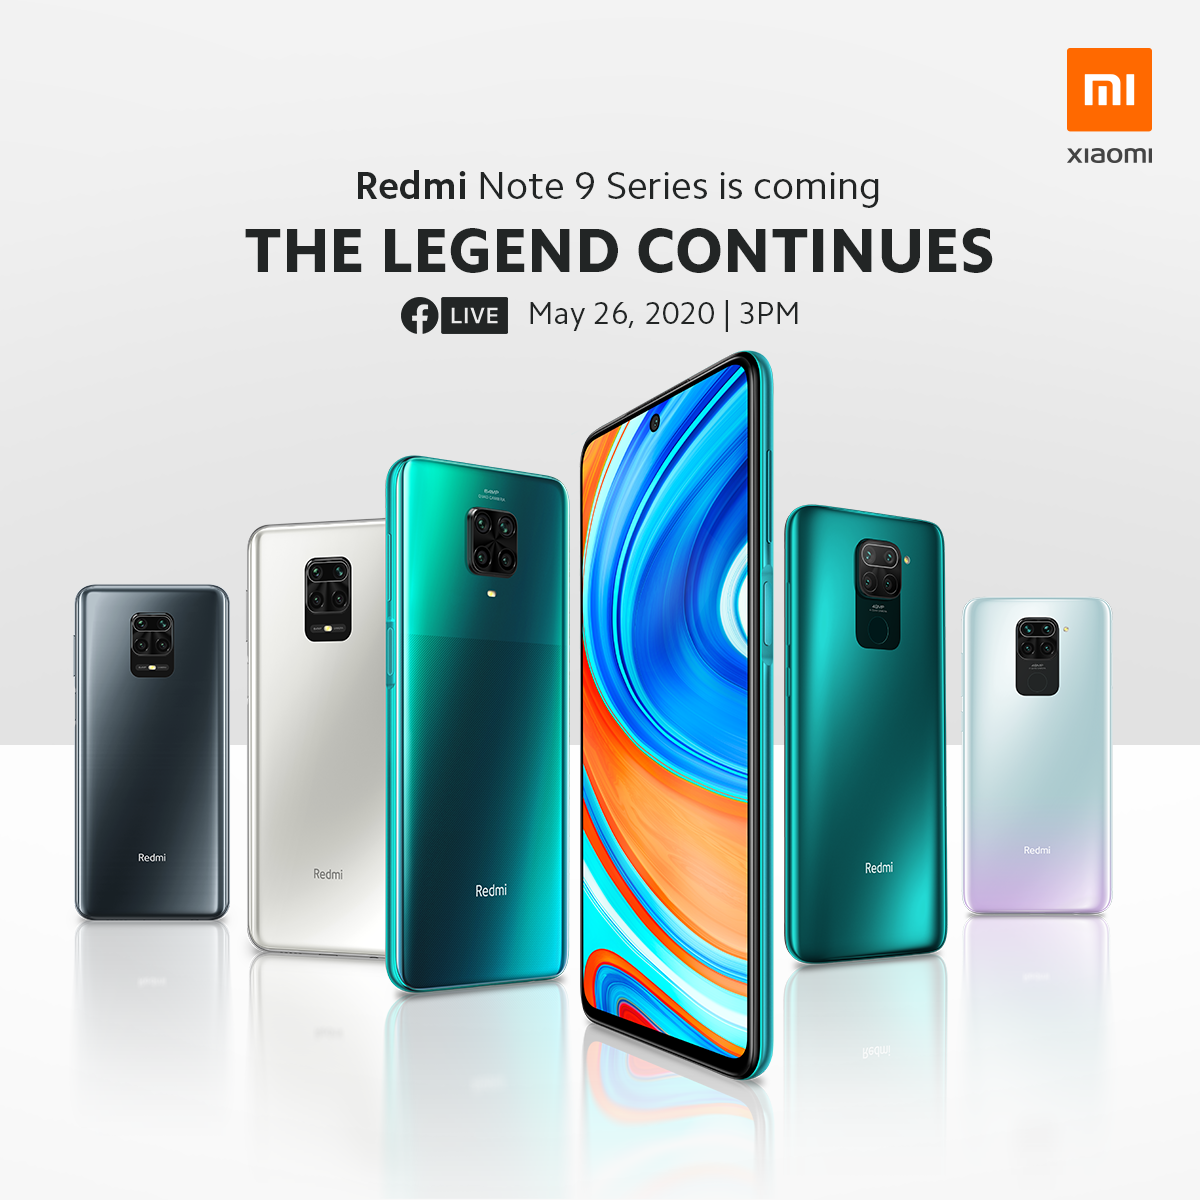 redmi note 9 series